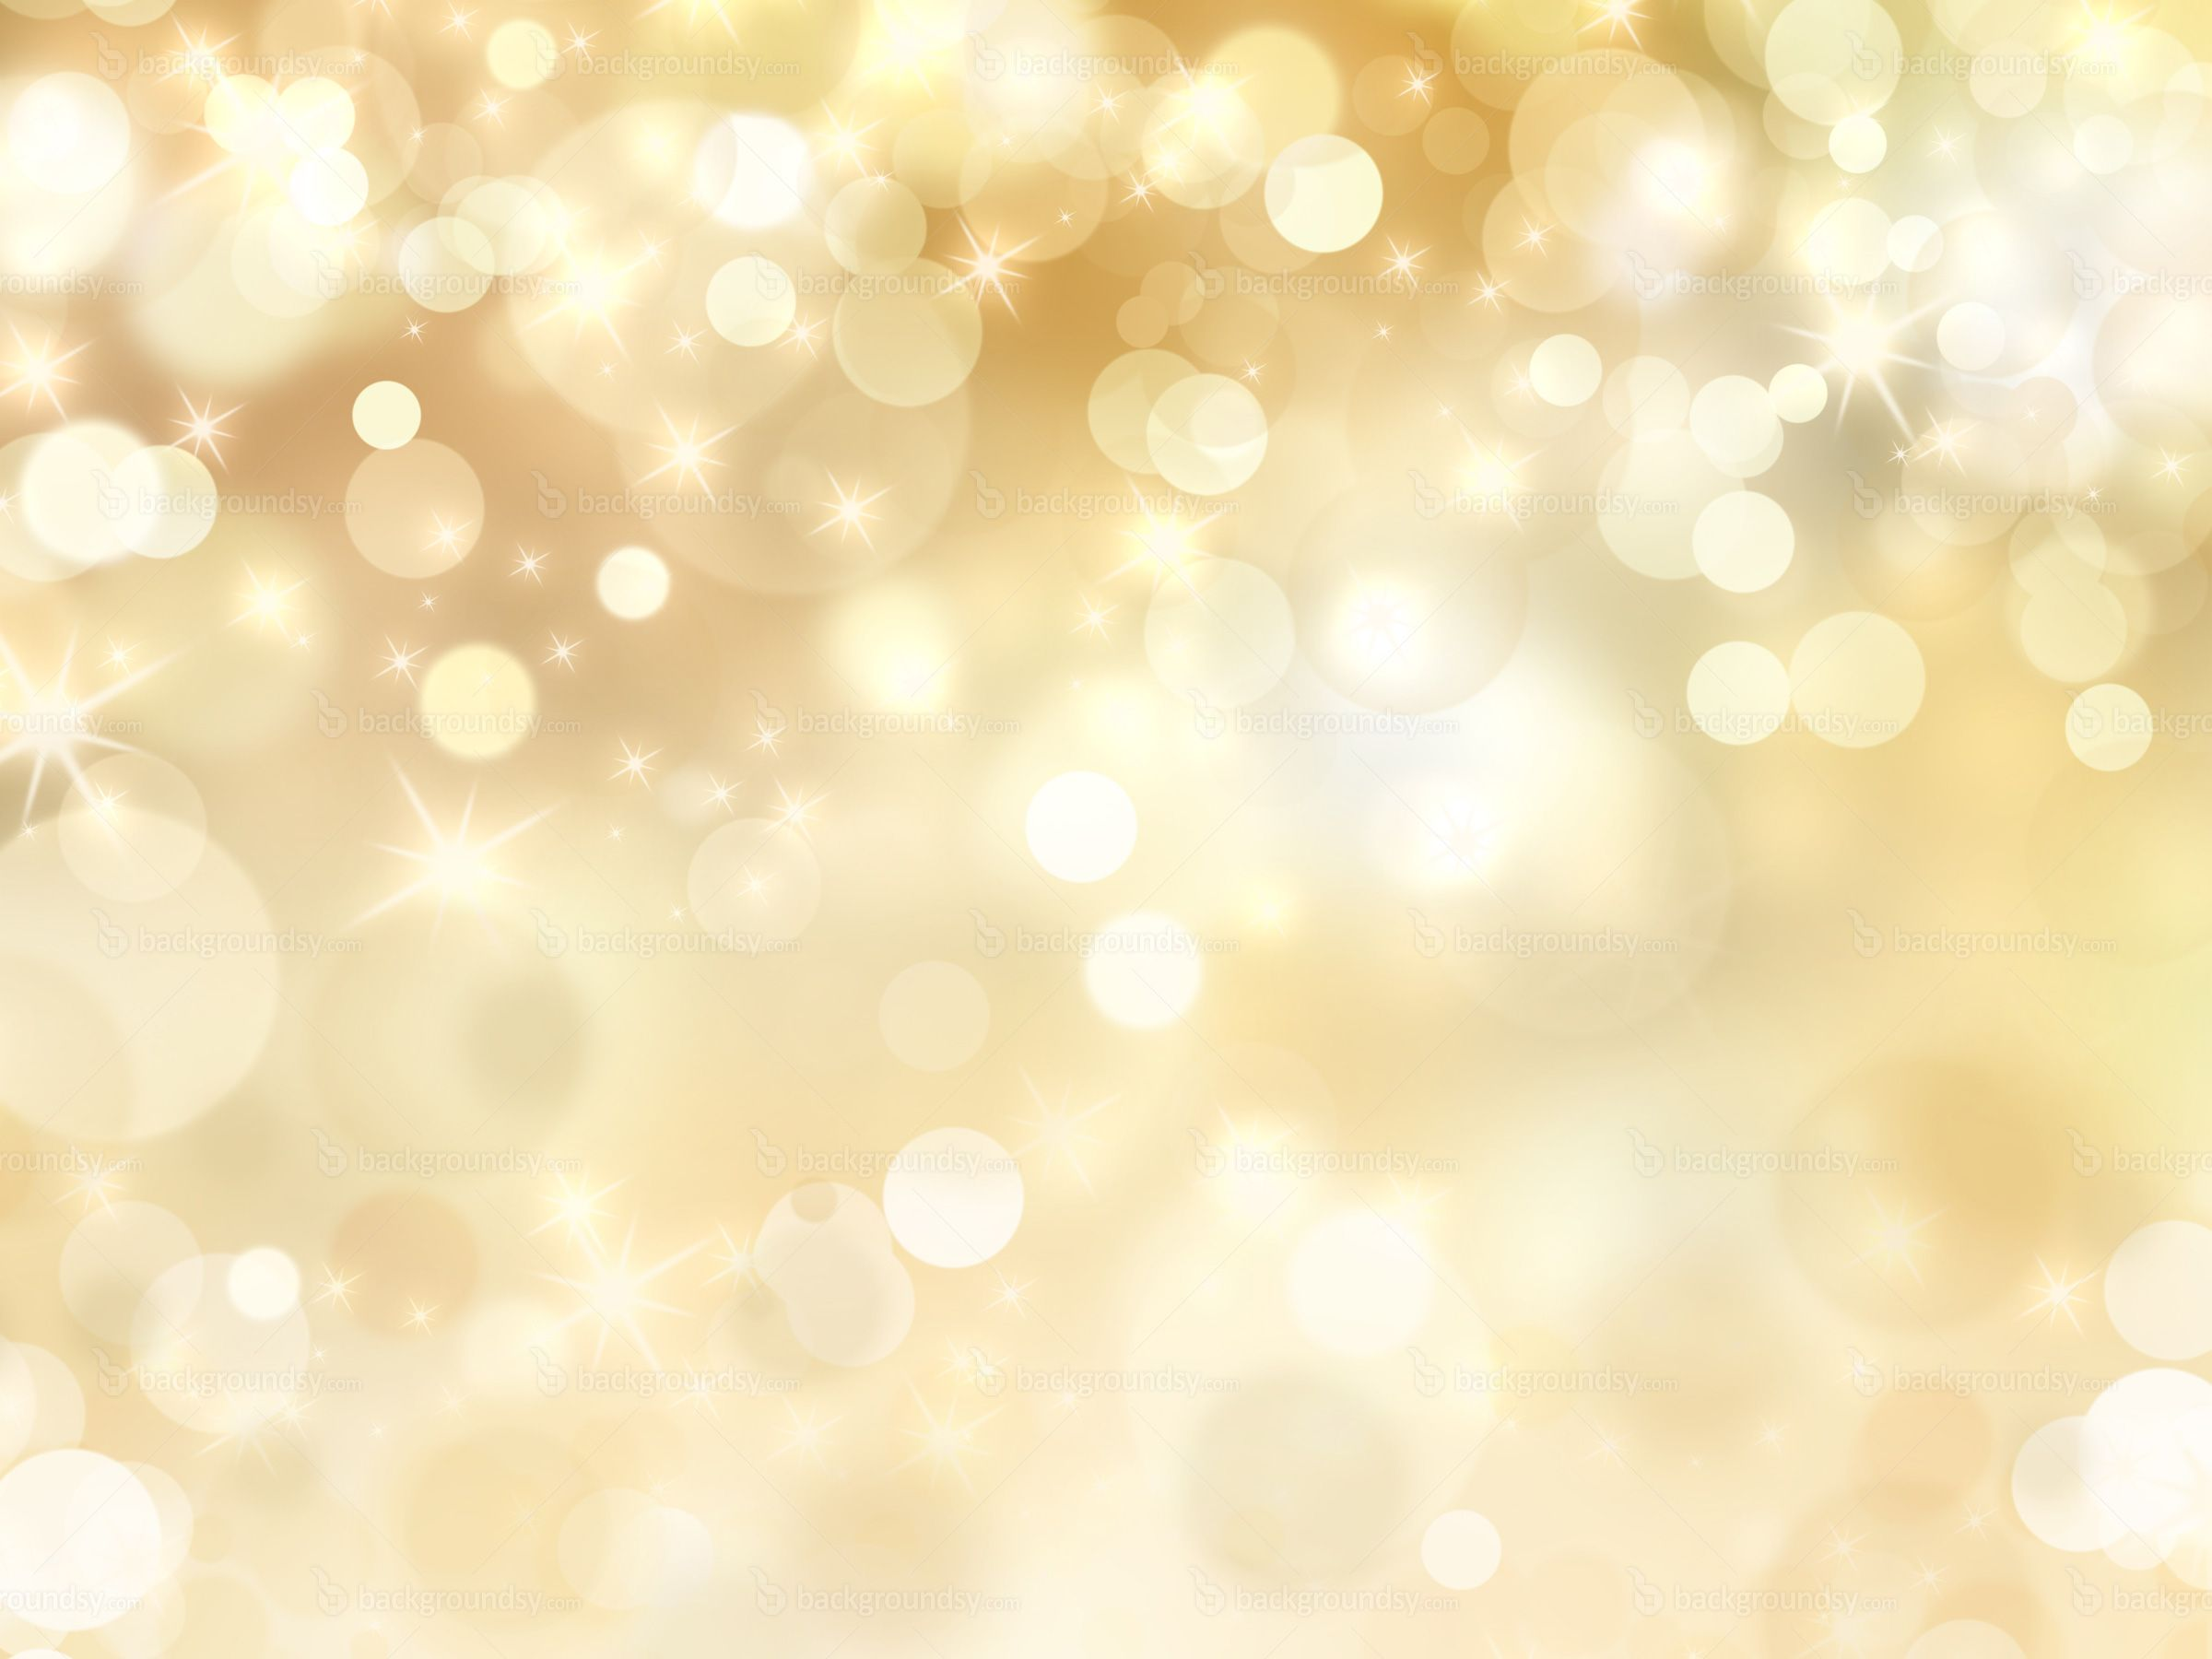 Christmas Background Images Gold.Christmas Background Backgroundsy Backgrounds